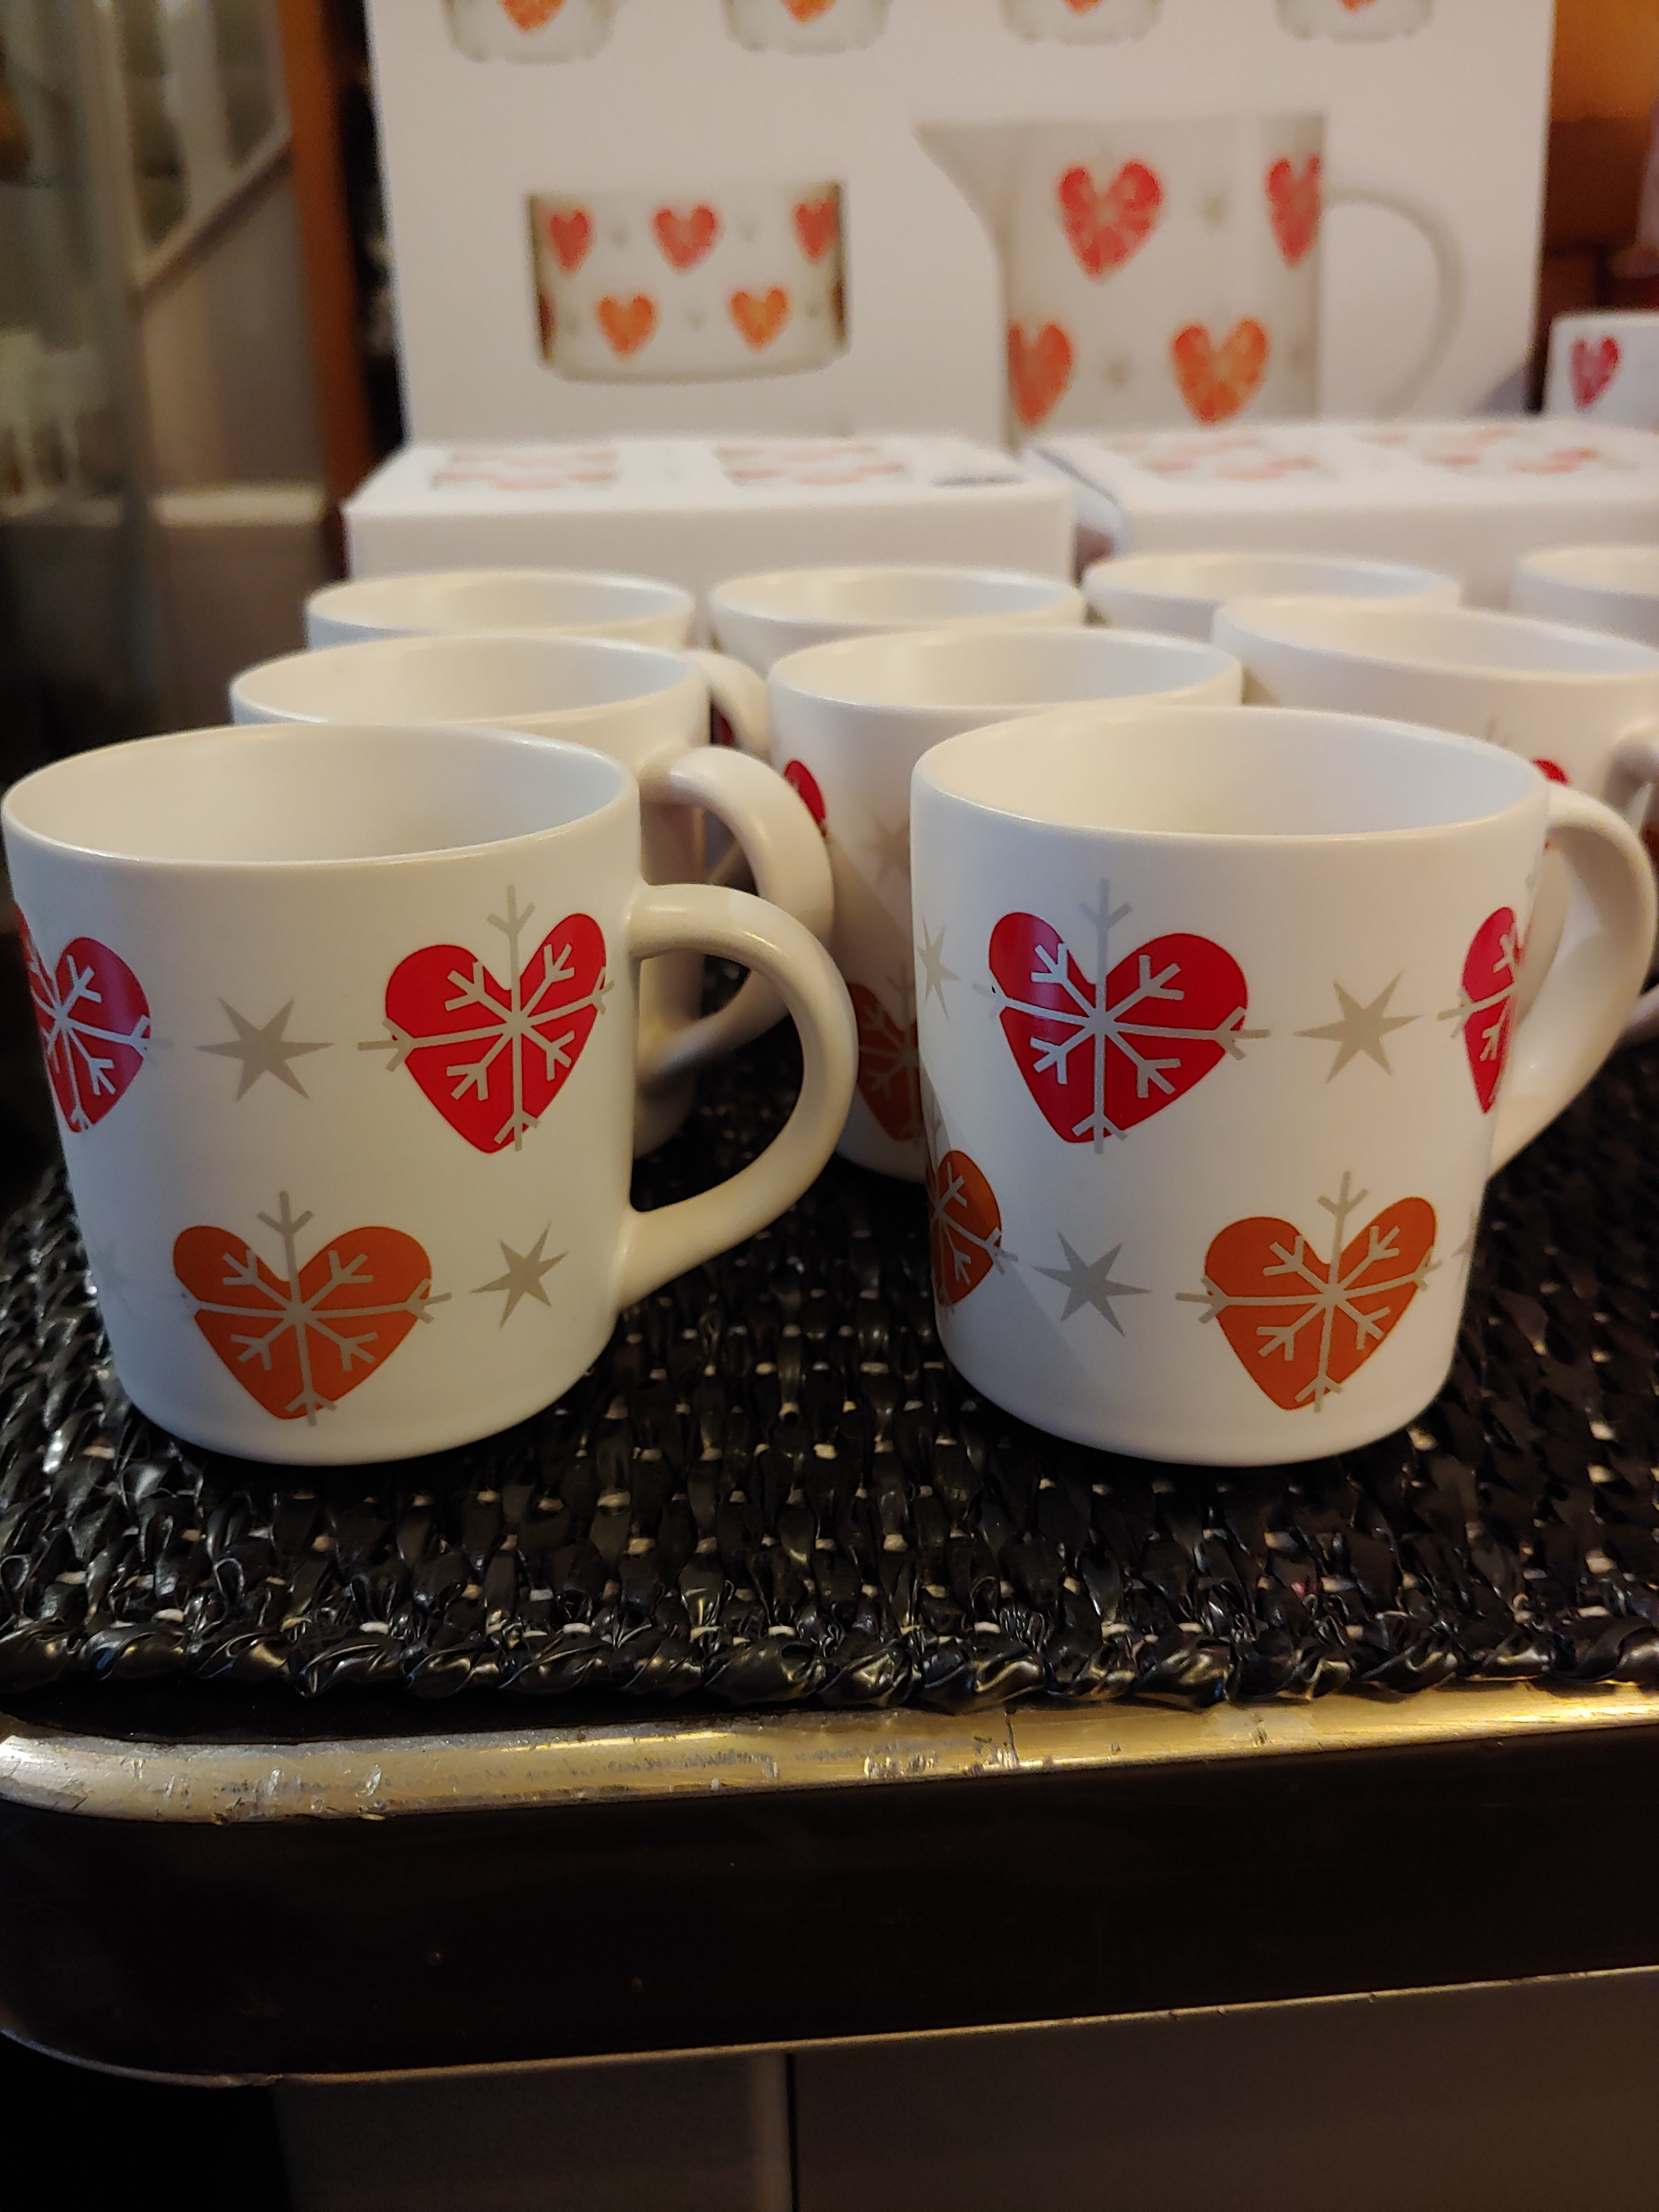 Single Christmas small mug for mulled wine or espresso